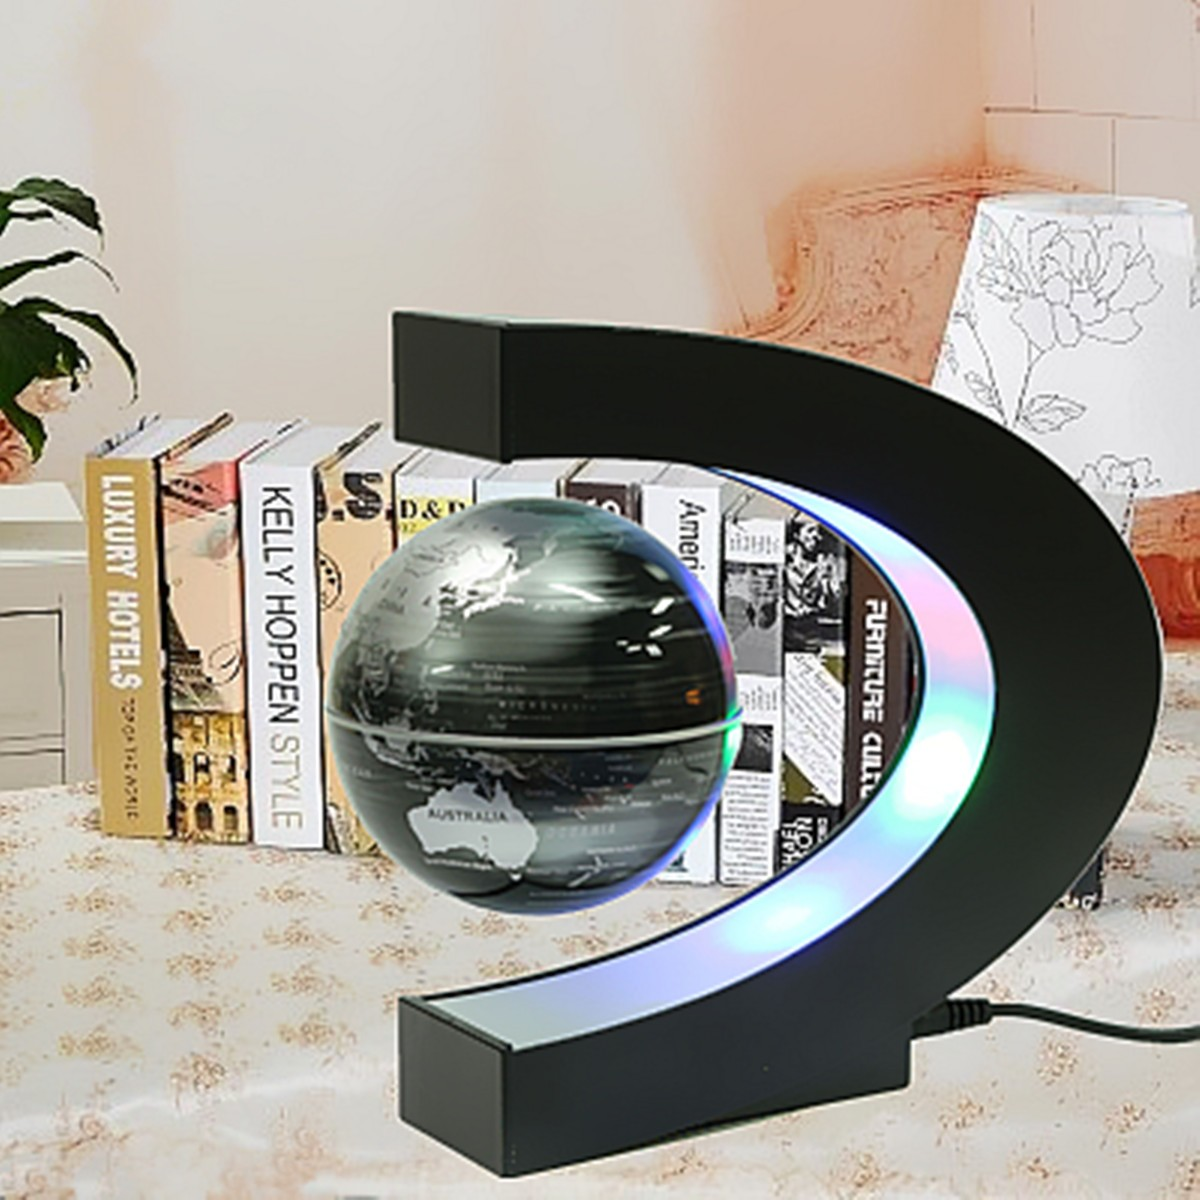 Teaching Resources C Form Led-welt Karte Dekoration Magnetic Levitation Schwebender Globus Schule Geographie Lehre Ressourcen Home Office Decor Geschenk QualitäTswaren